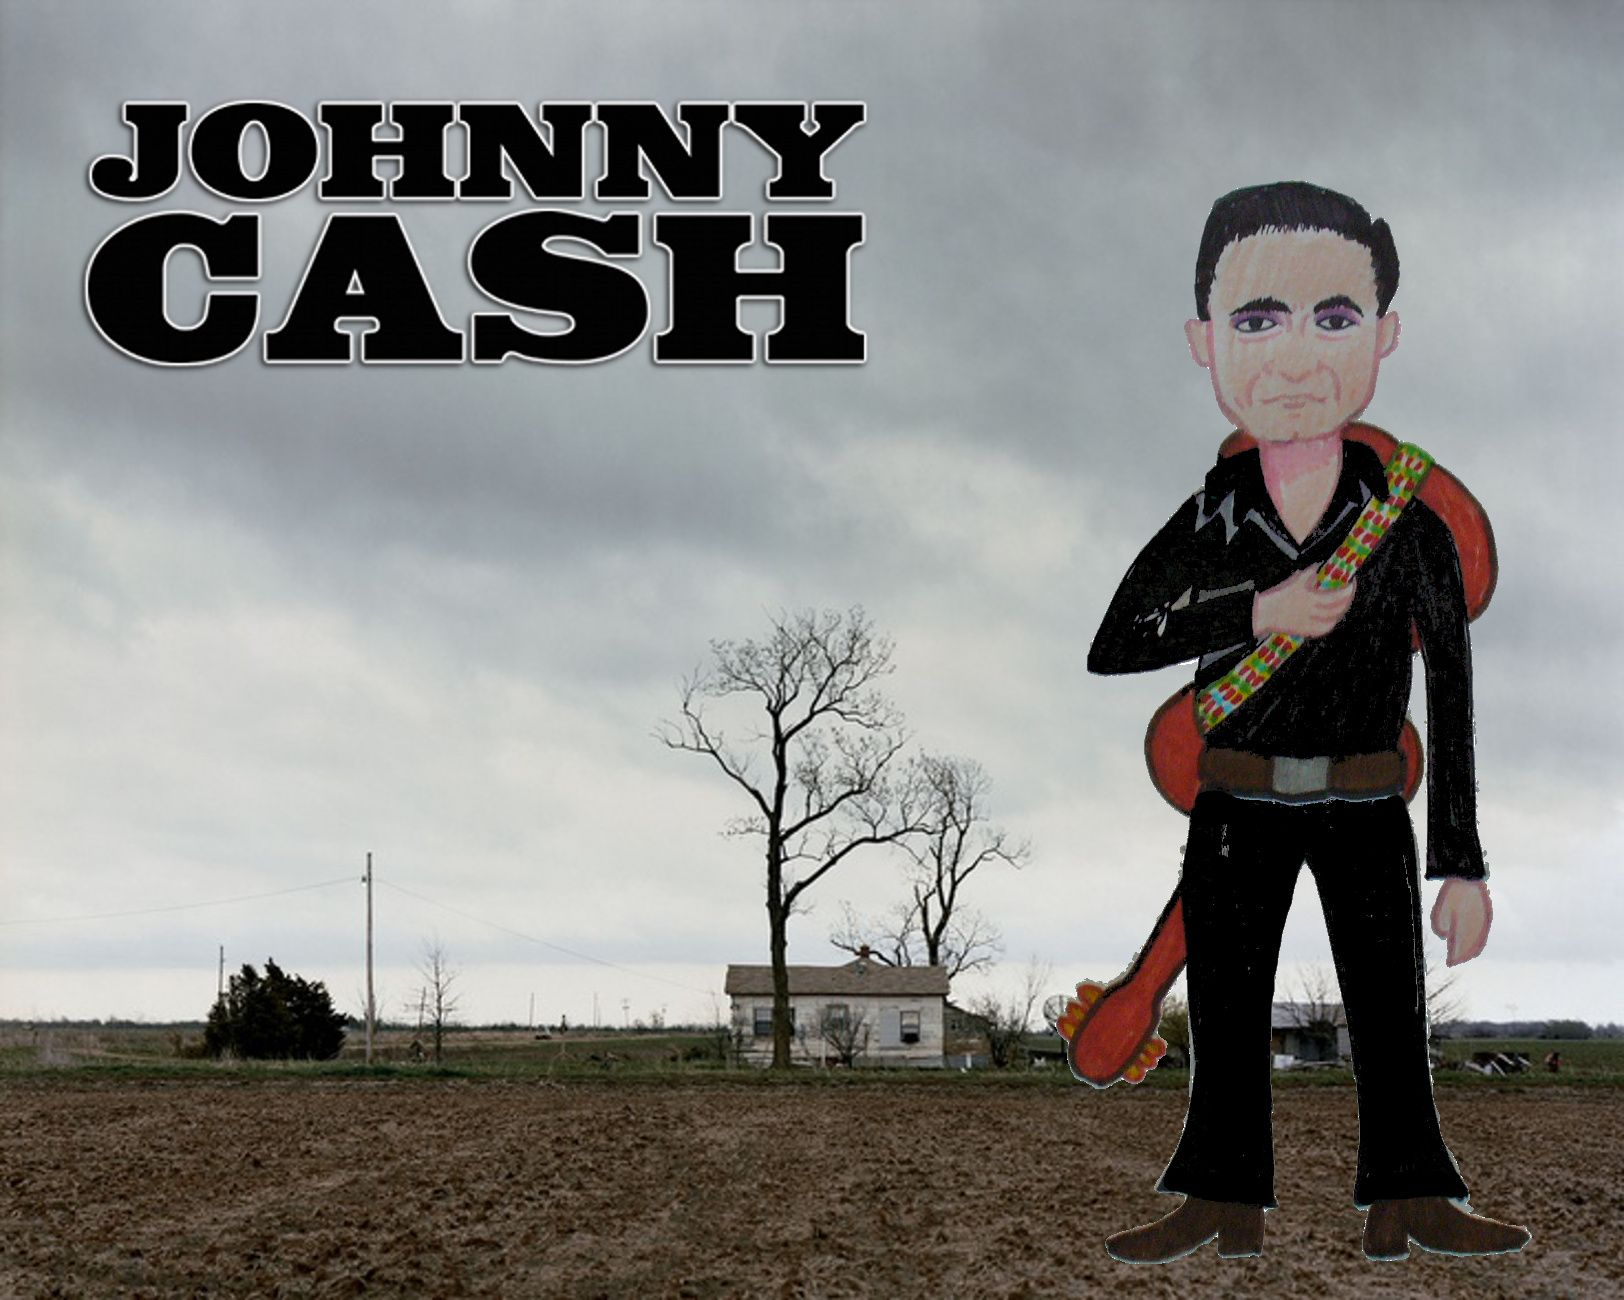 Listen to Freak Out! Monography #21 - JOHNNY CASH